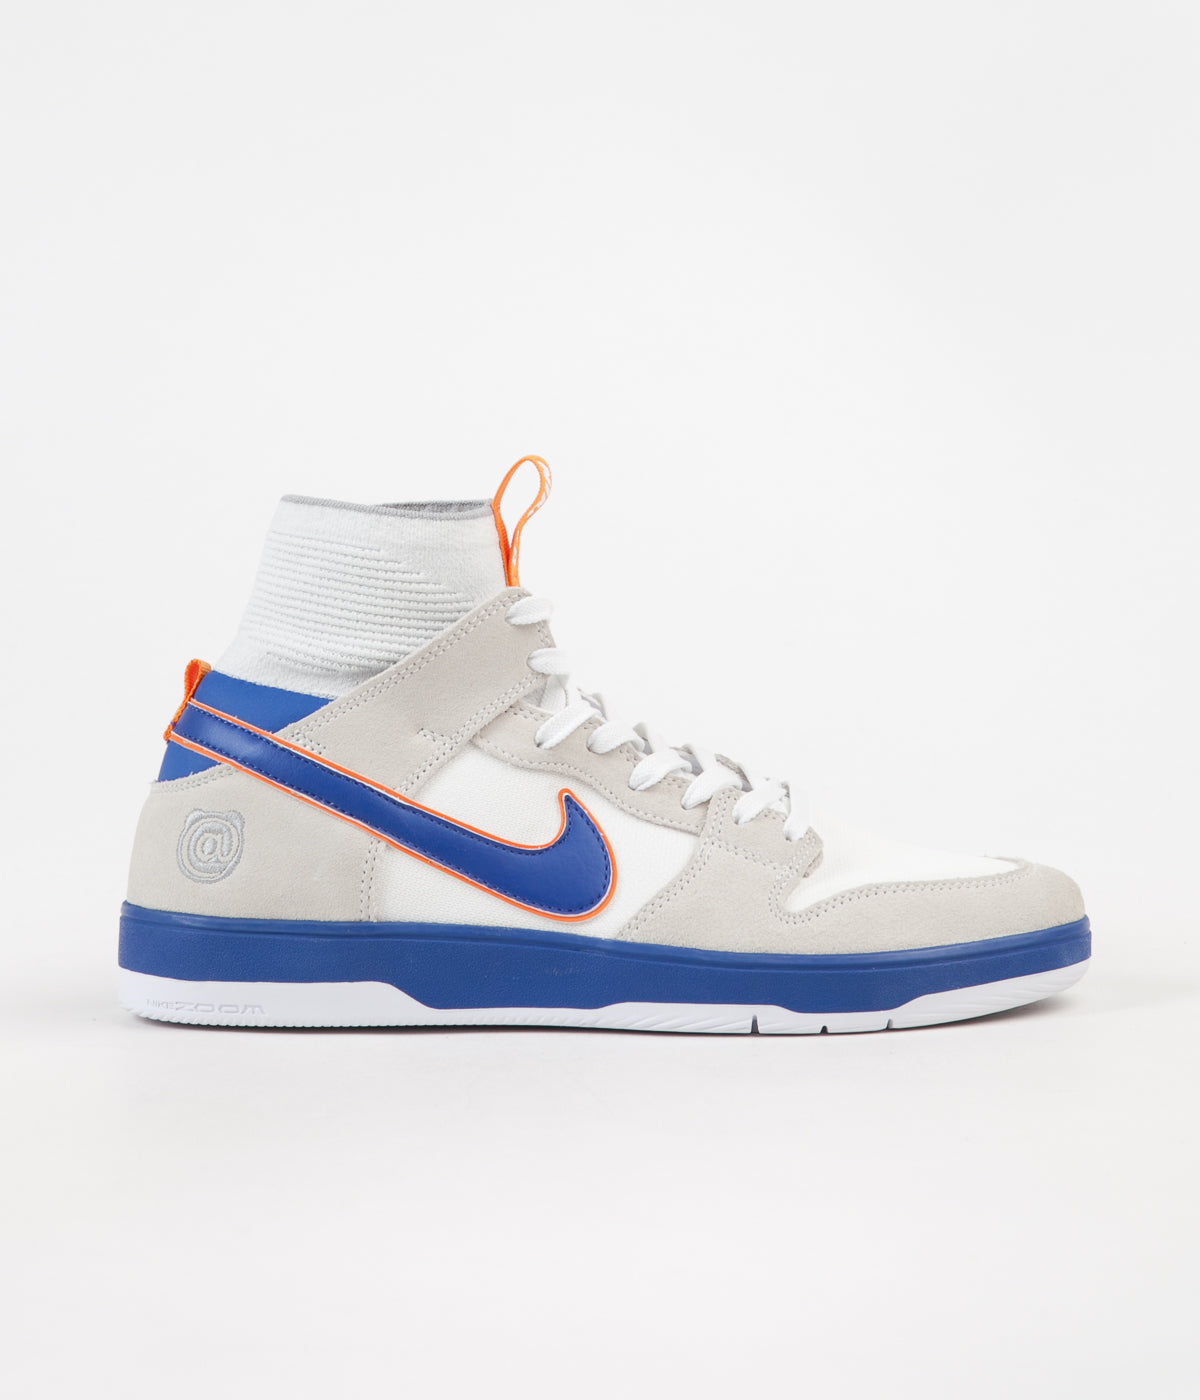 wholesale dealer 85d28 b3a12 Nike SB x Medicom Dunk High Elite QS Shoes - White   College Blue - White -  Gold Post